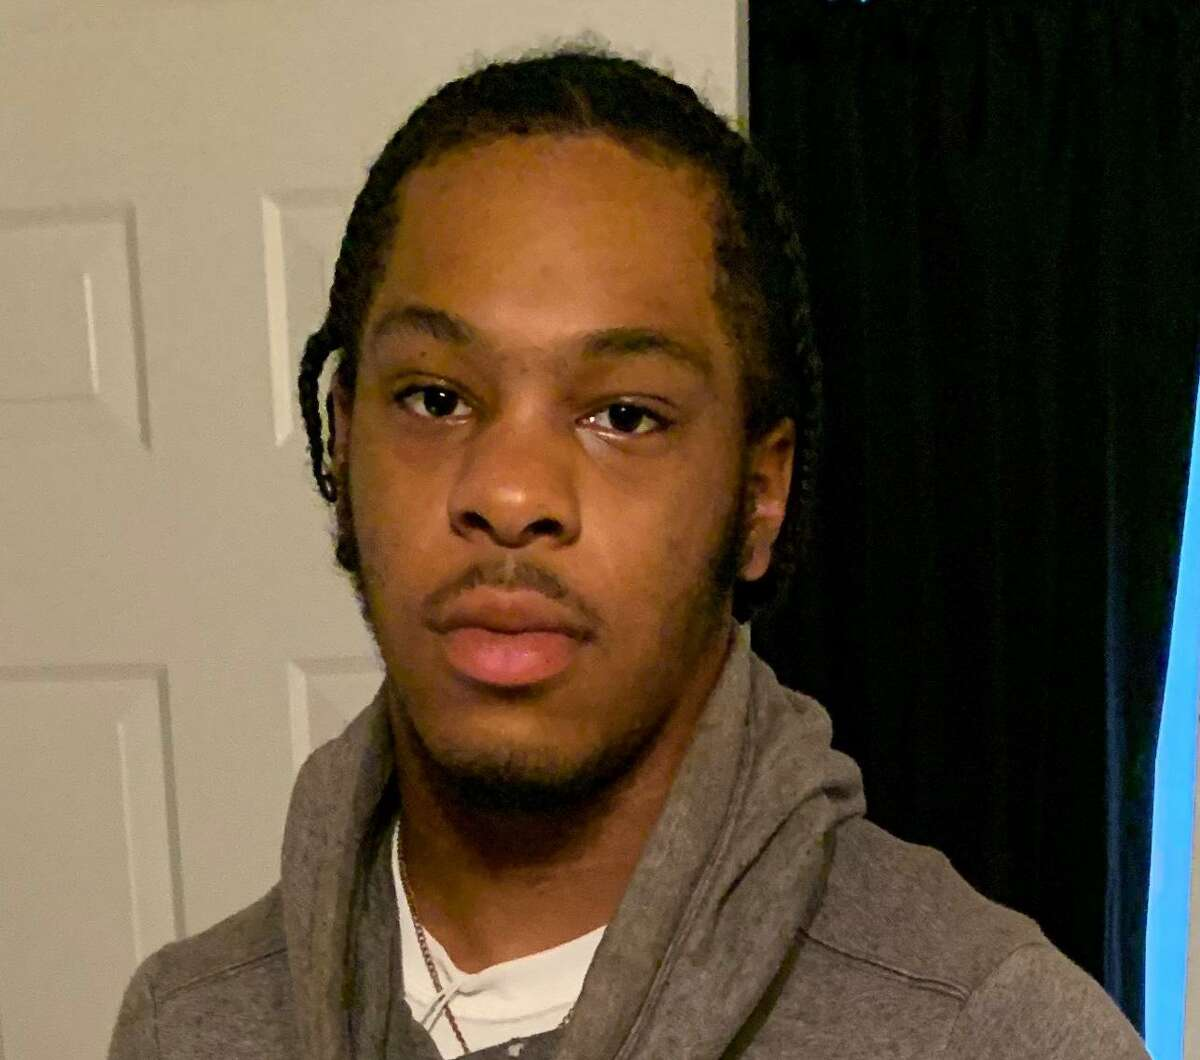 Kevahri Thompson, 14, was last seen around 9 a.m. Tuesday wearing flannel pants, a white T-shirt and a red sweater, Lt. Patrick Lynch said.